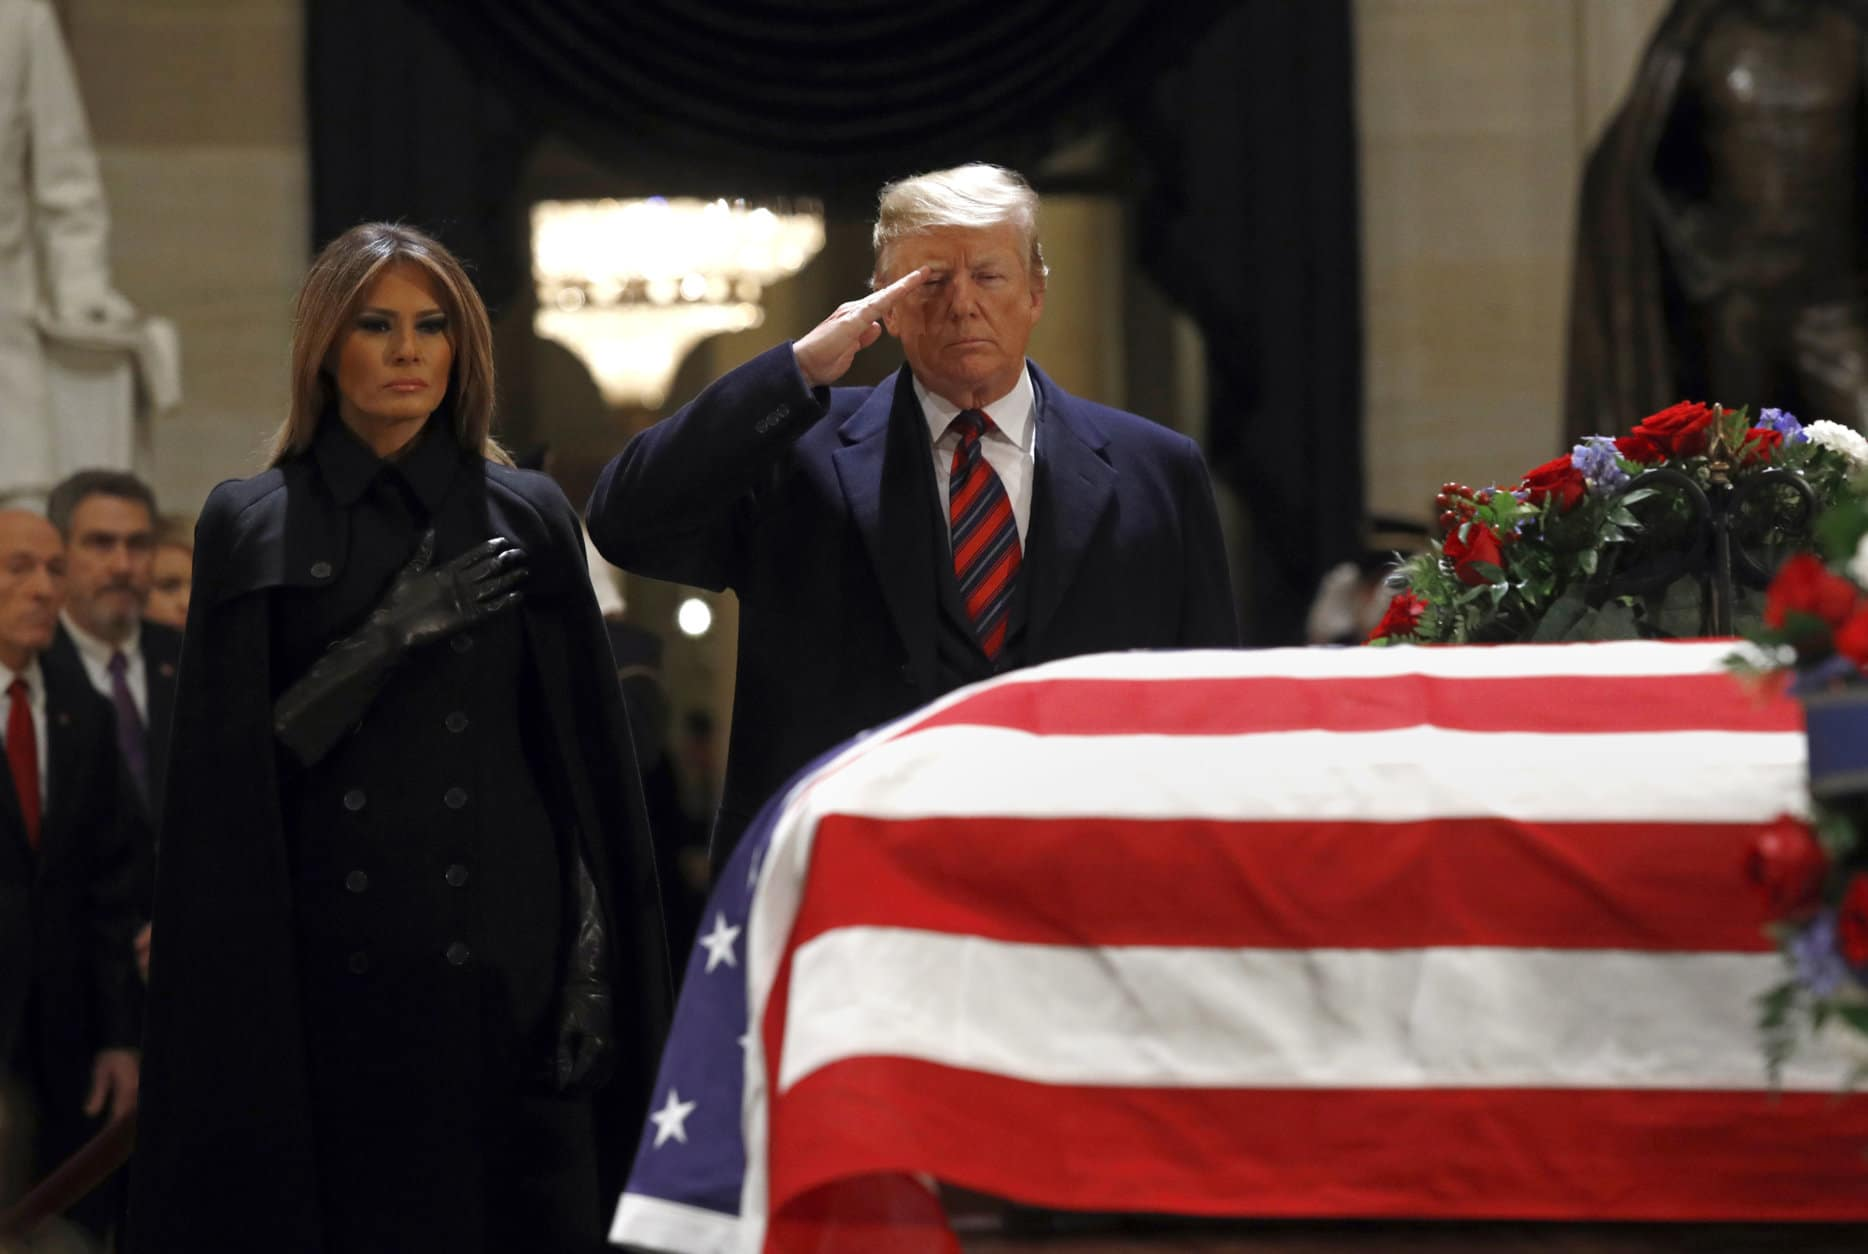 President Donald Trump salutes alongside first lady Melania Trump in front of the flag-draped casket of former President George H.W. Bush in the Capitol Rotunda in Washington, Monday, Dec. 3, 2018. (AP Photo/Patrick Semansky)